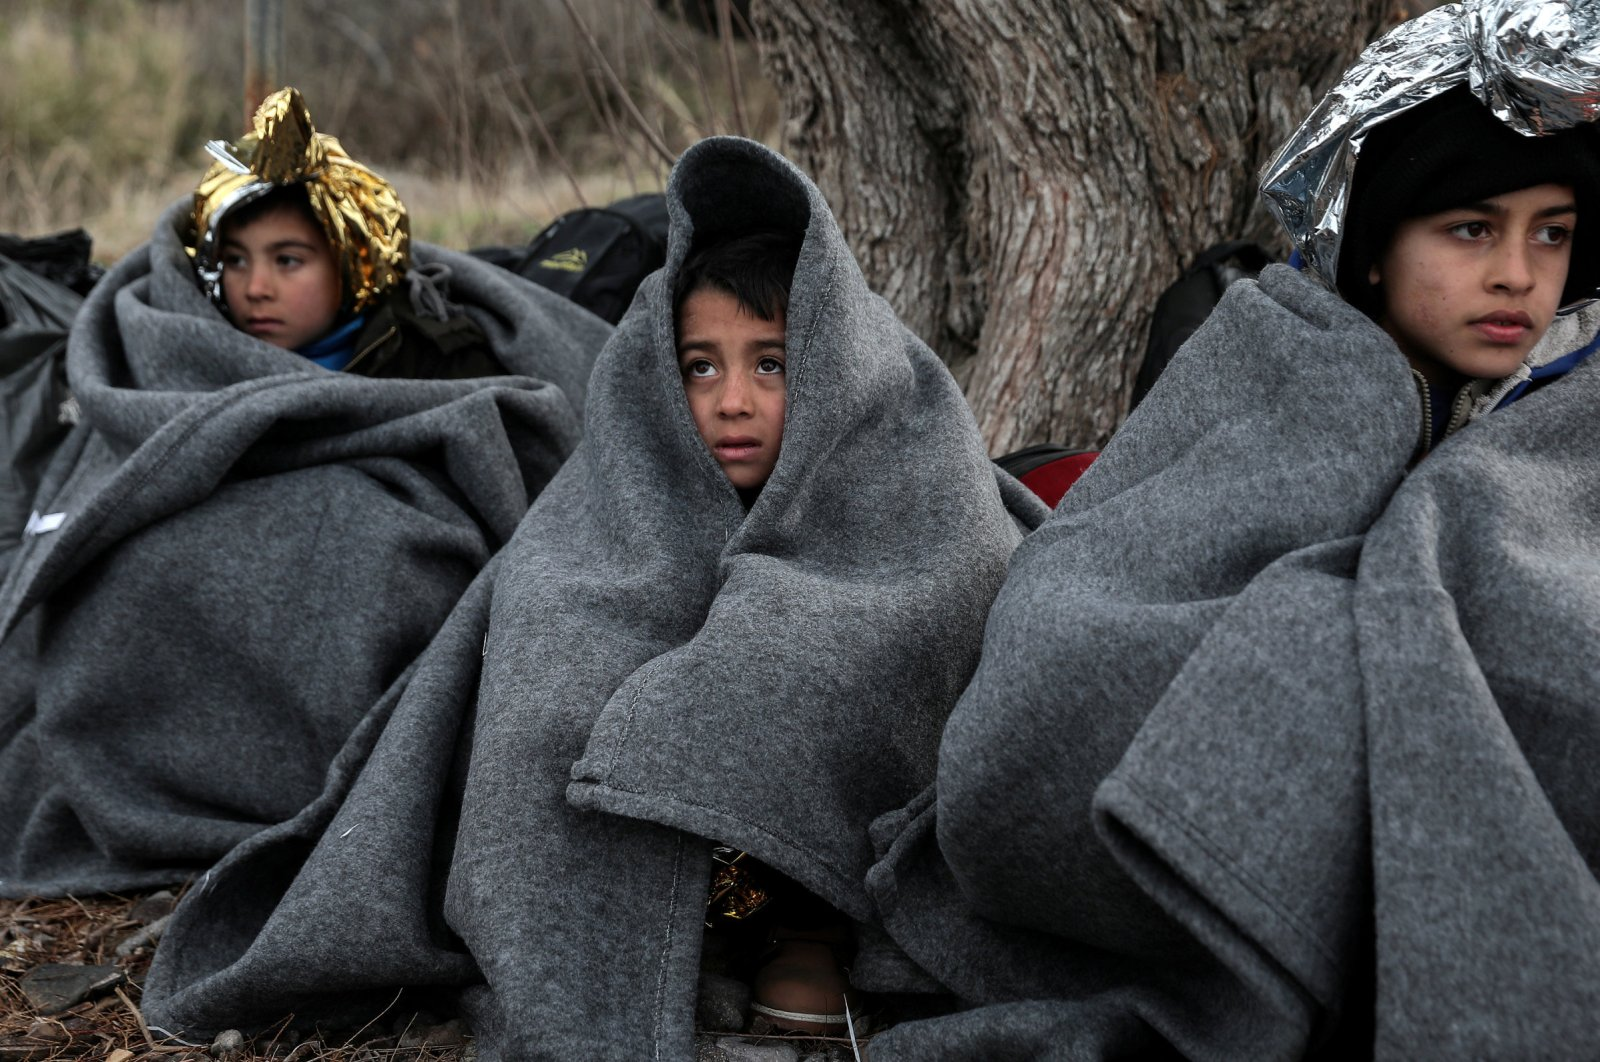 Children are covered with blankets and thermal blankets after migrants from Afghanistan arrived on a dinghy on a beach near the village of Skala Sikamias on the island of Lesbos, Greece, Feb. 28, 2020. (Reuters File Photo)